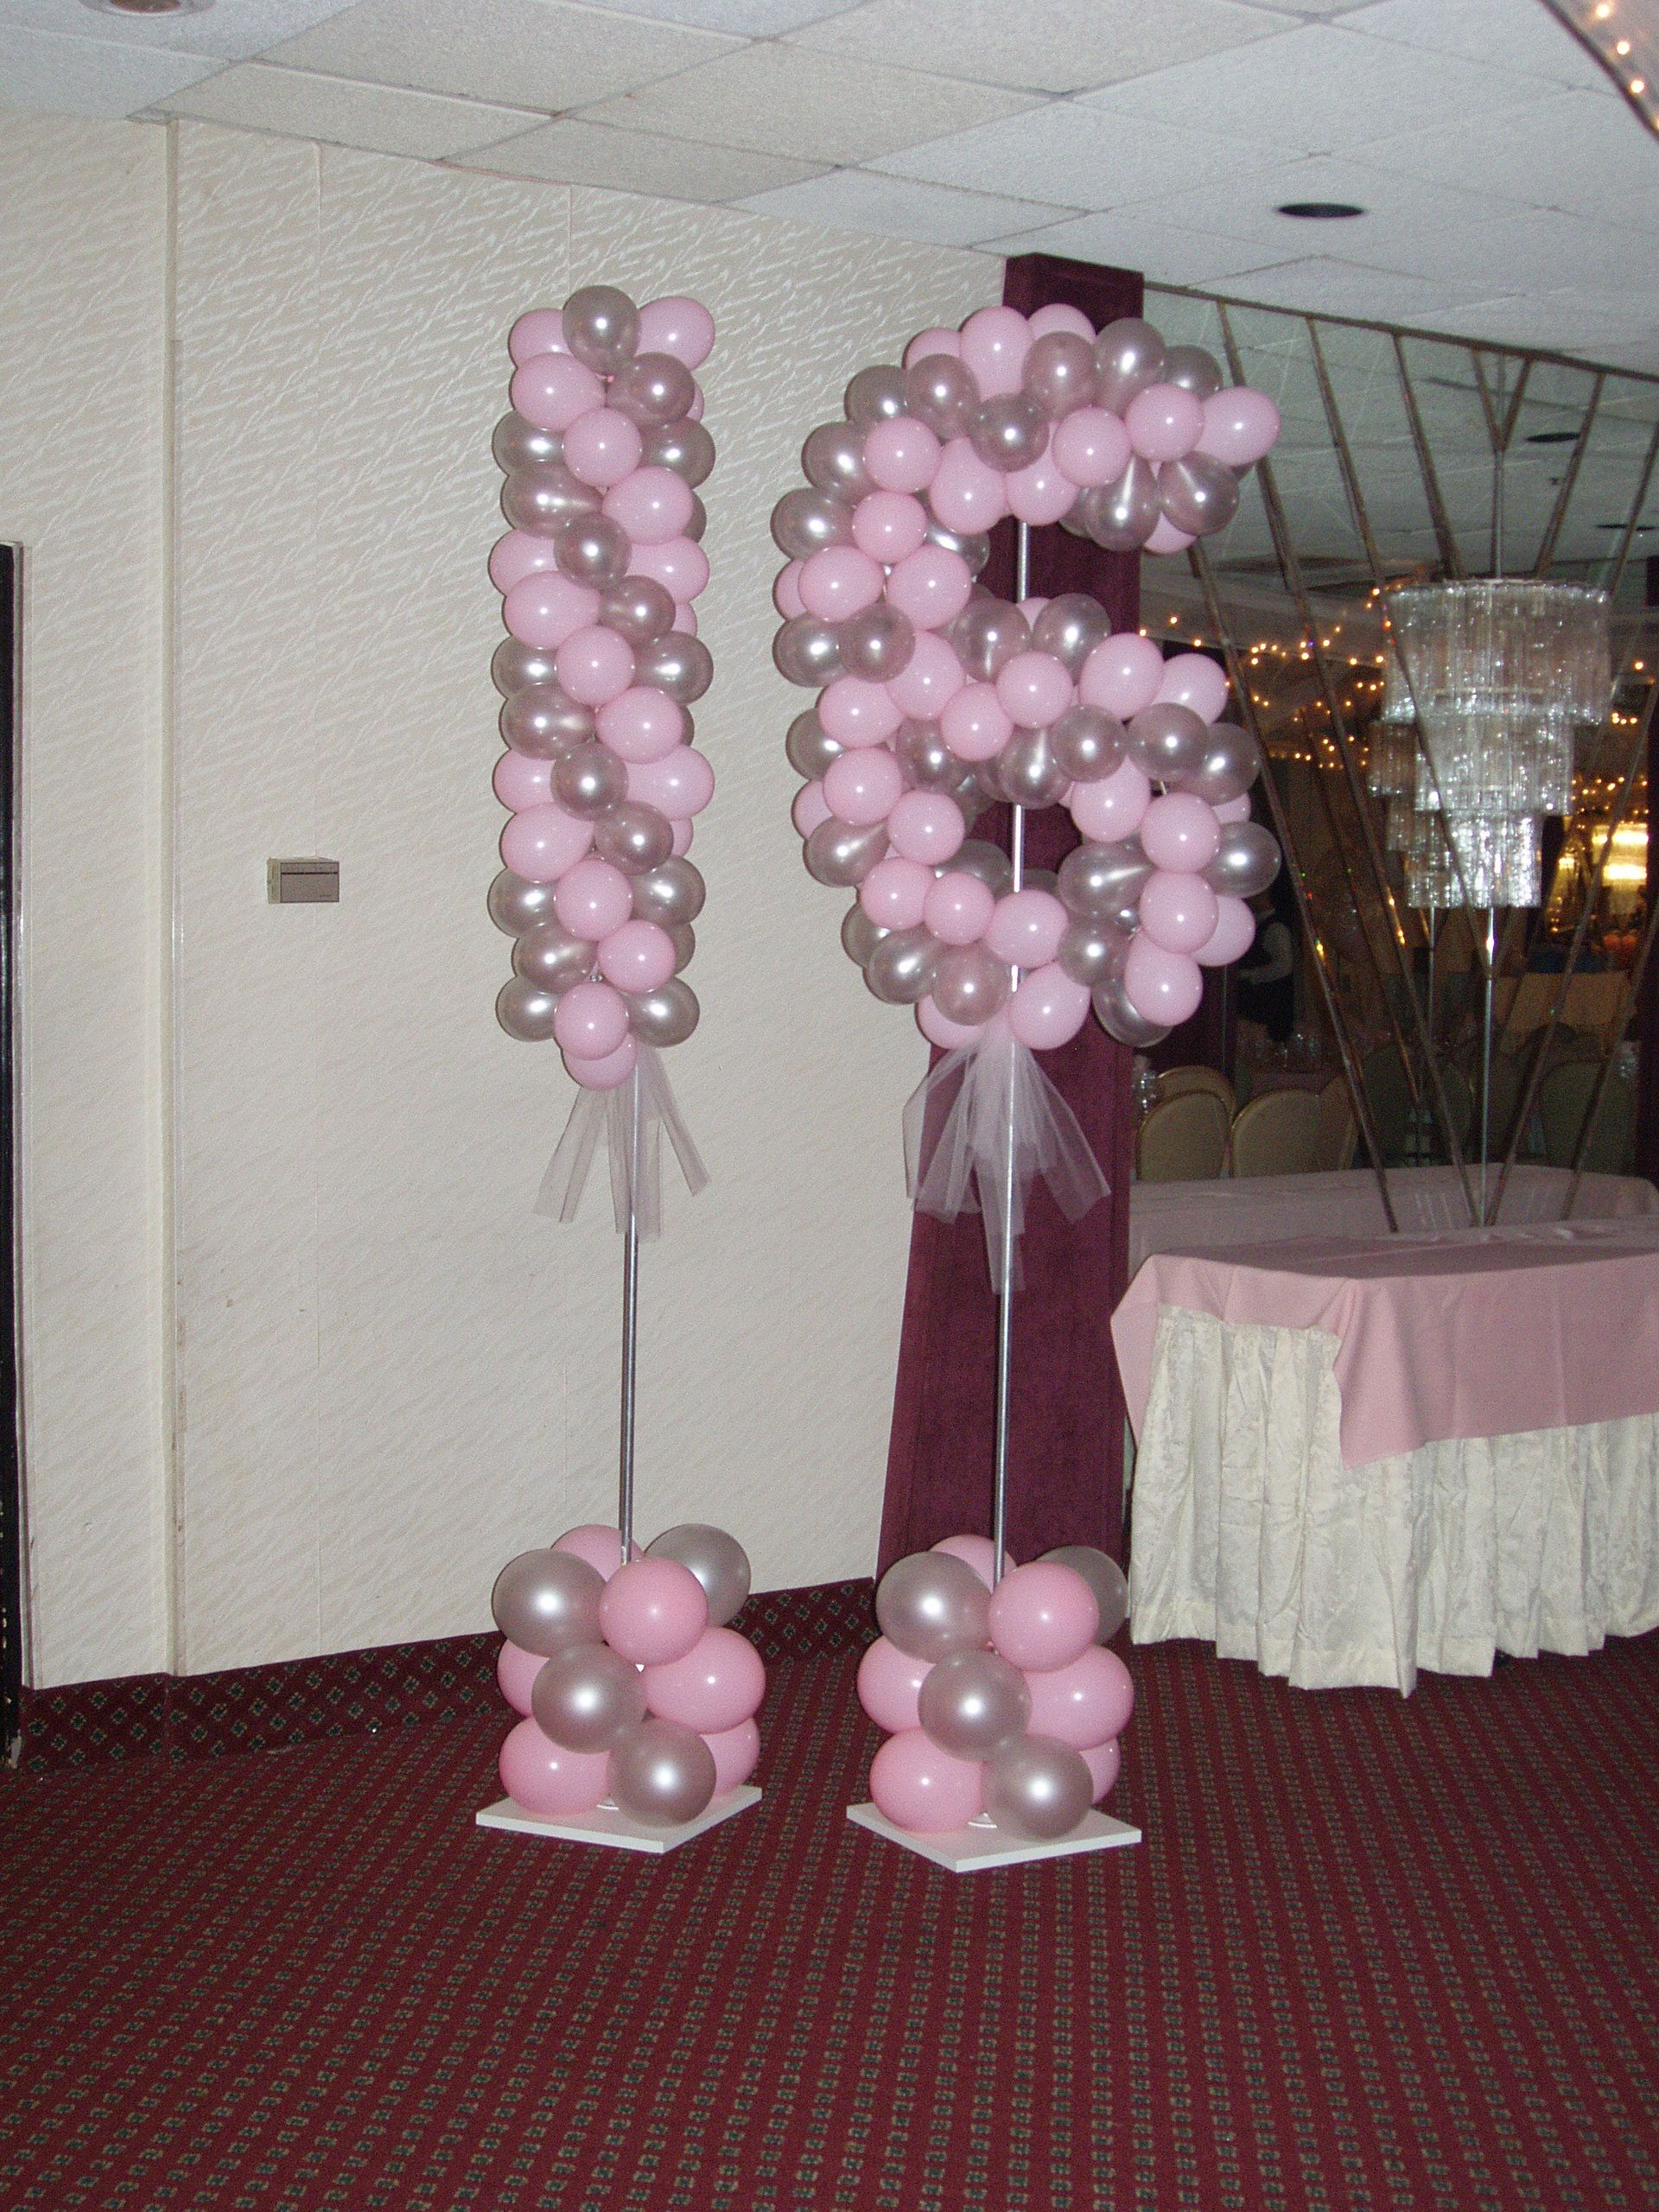 15 Balloons Sweet 16 Decorations 16th Birthday Balloon Crafts